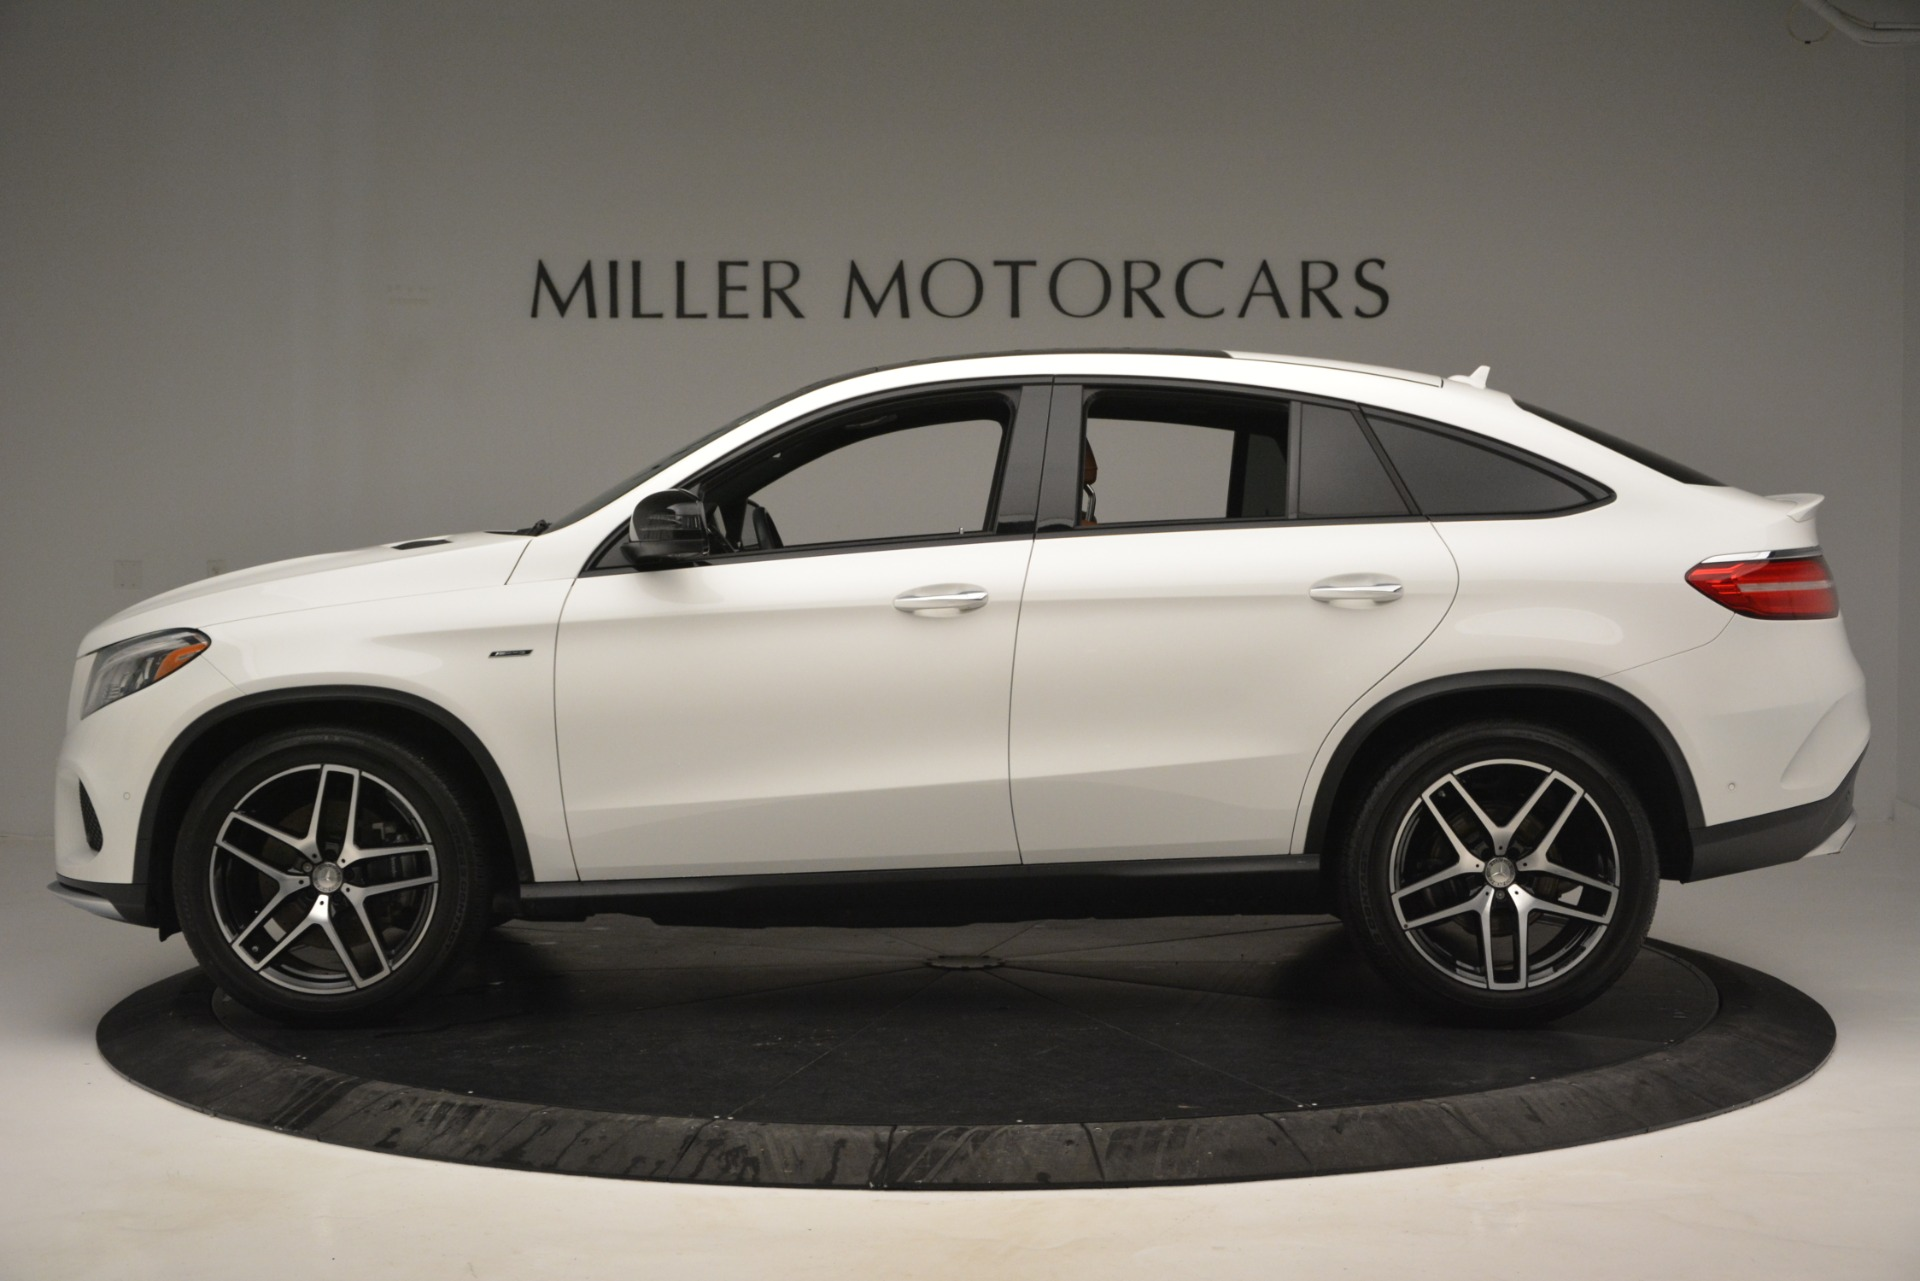 Used 2016 Mercedes-Benz GLE 450 AMG Coupe 4MATIC For Sale In Westport, CT 2787_p3